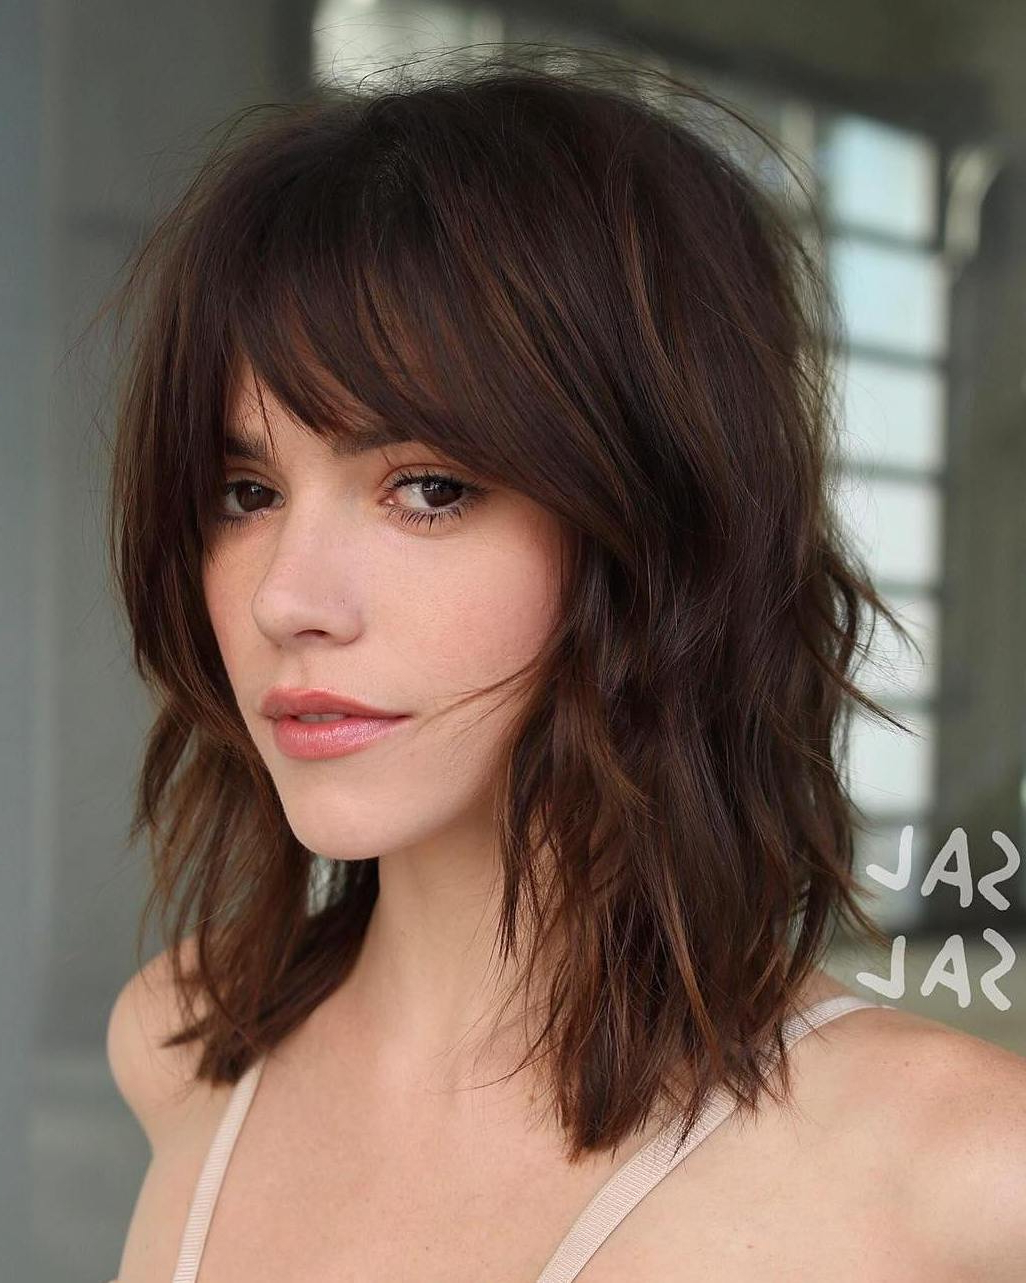 35 Killer Ways To Work Long Bob Haircuts For 2019 For Curly Messy Bob Hairstyles With Side Bangs (View 8 of 20)